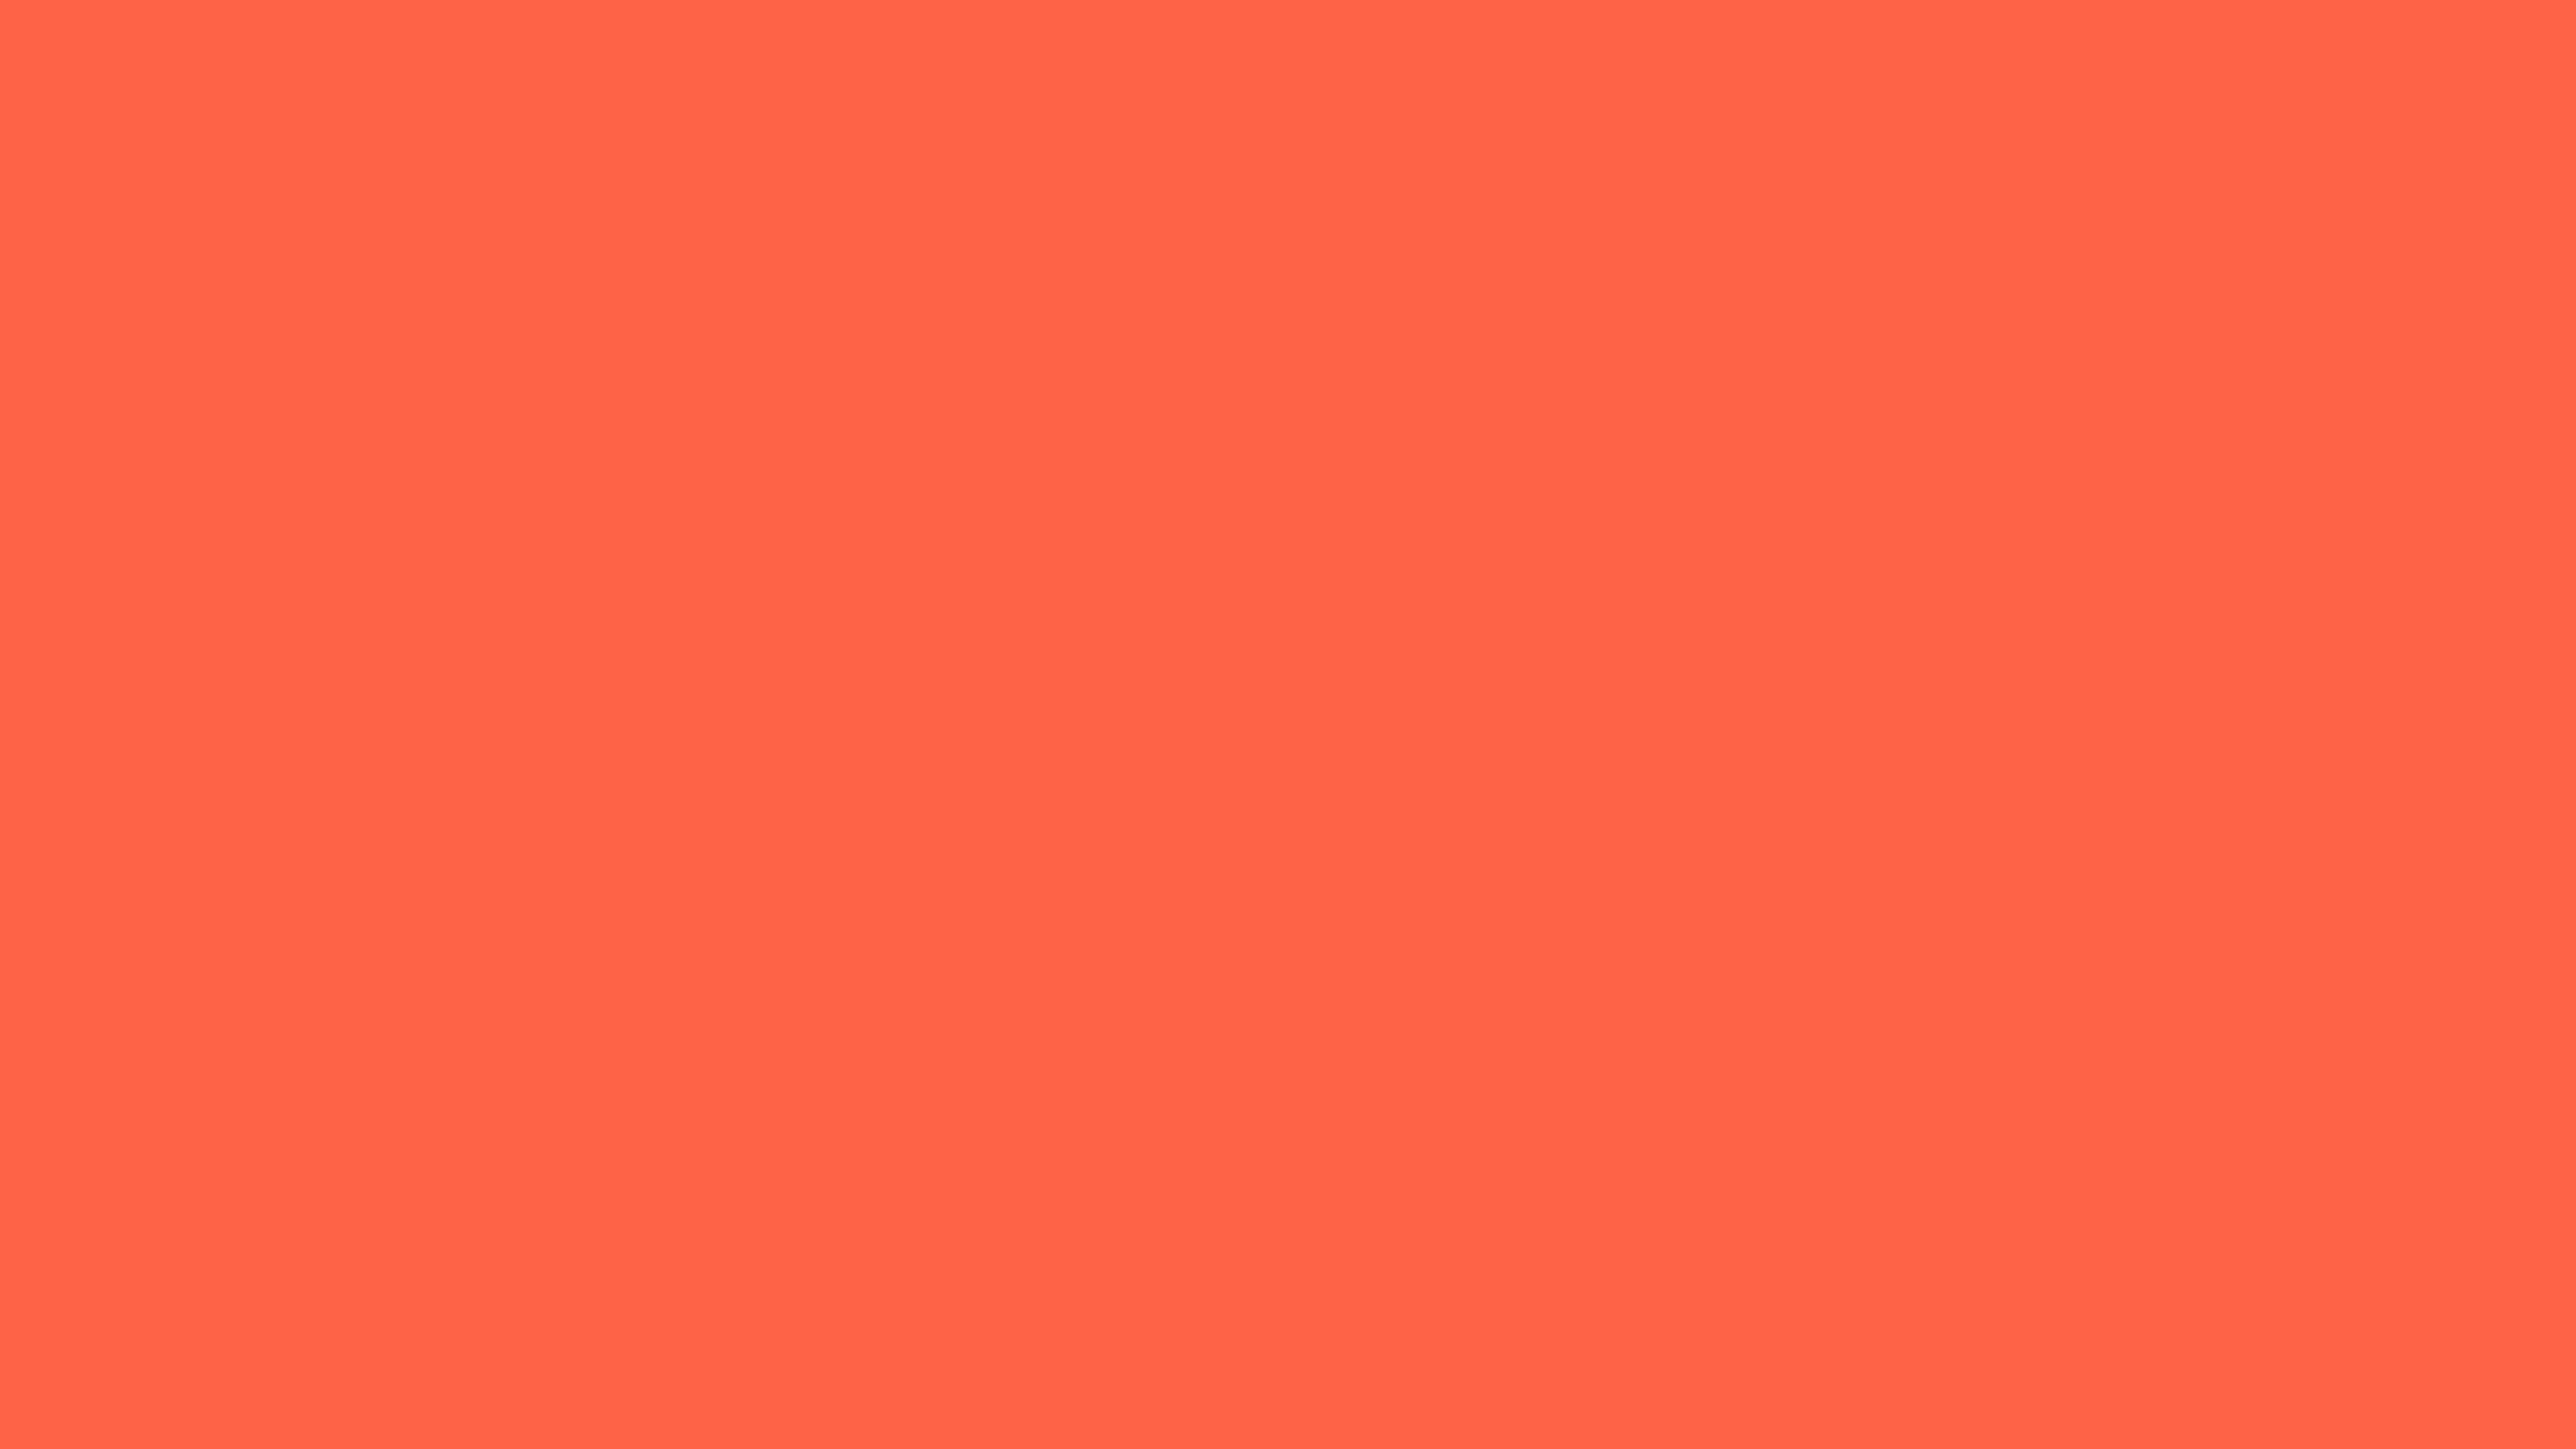 3840x2160 Tomato Solid Color Background